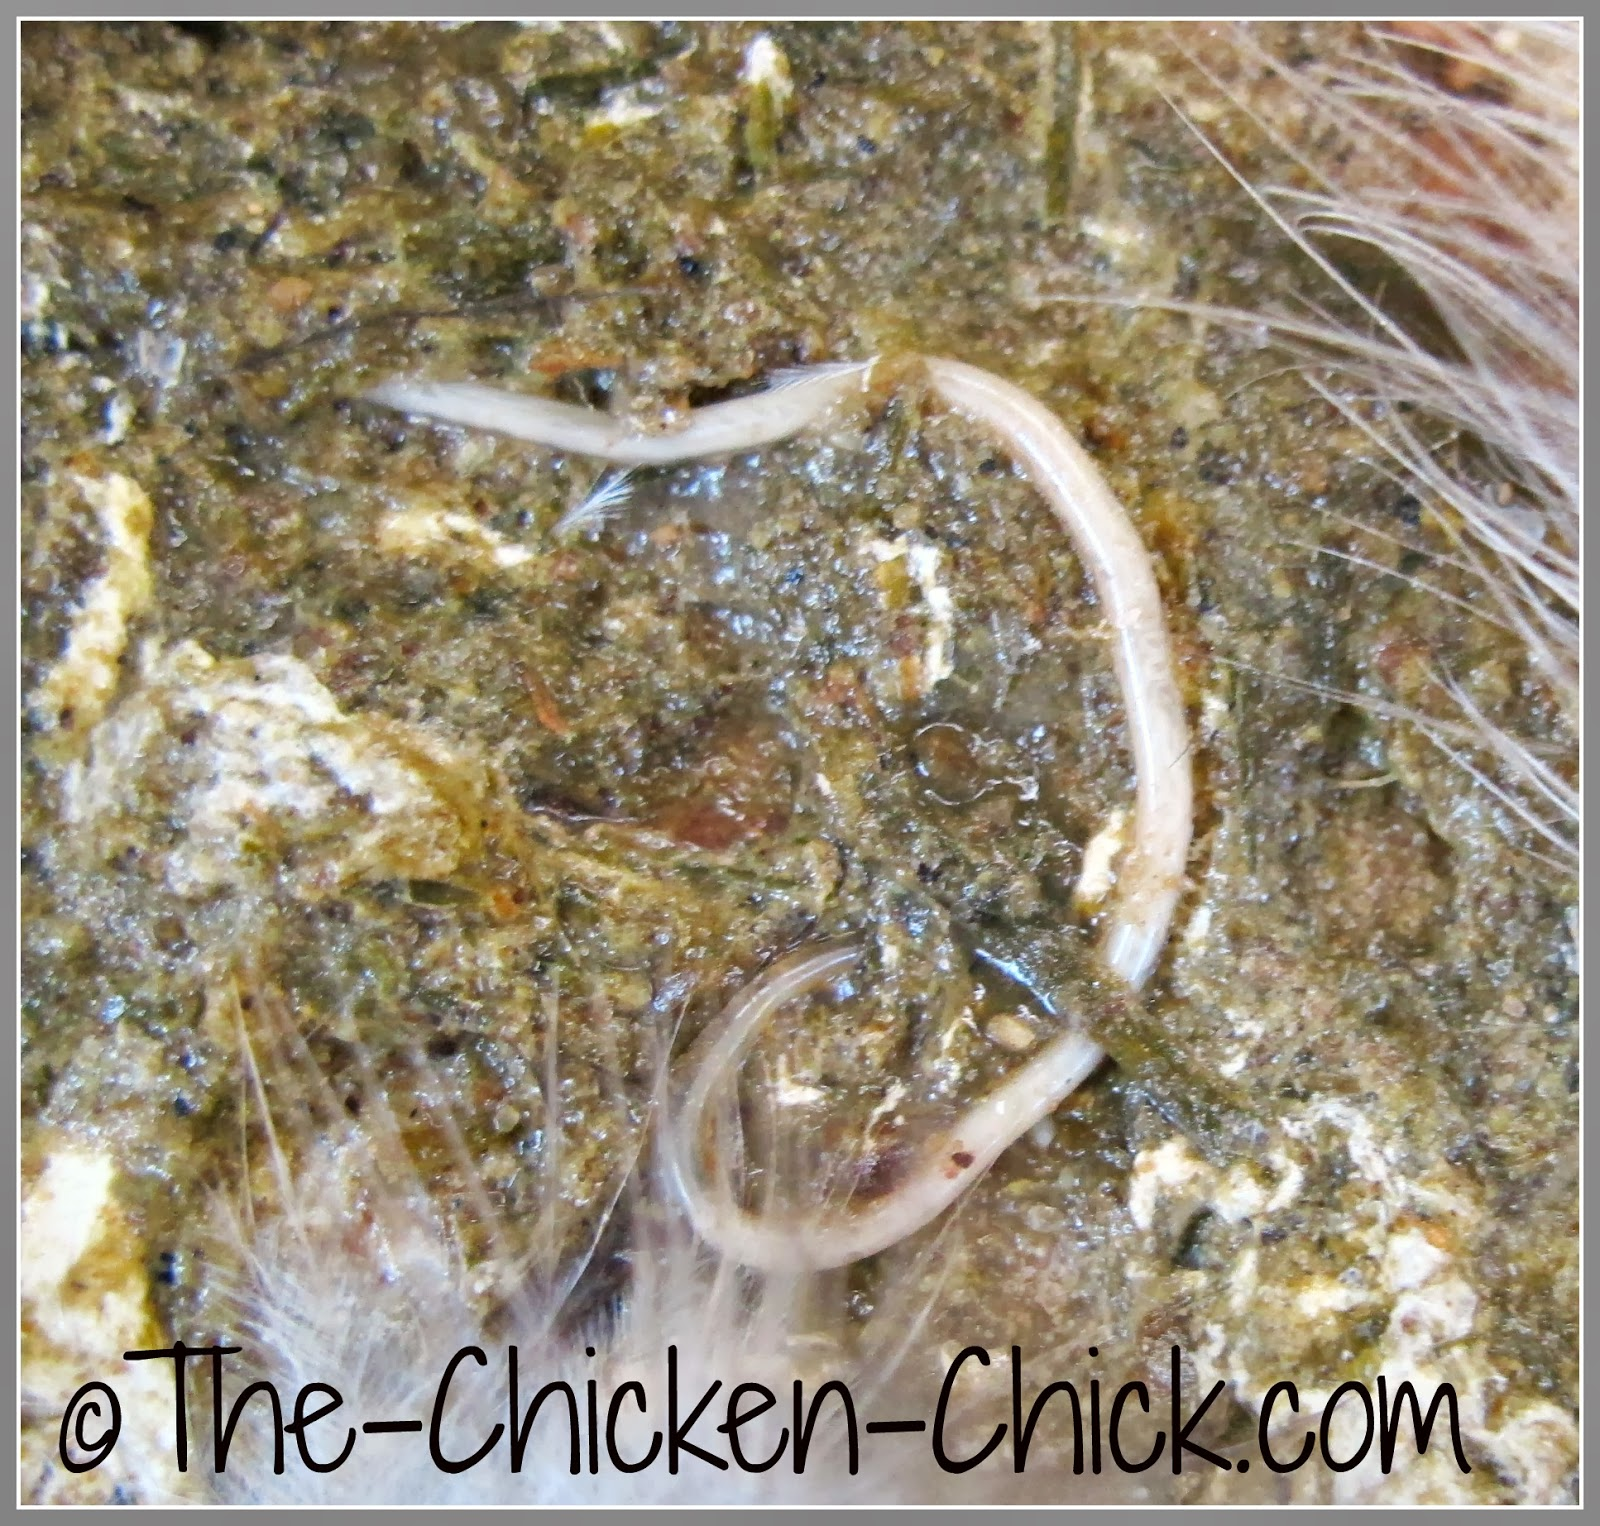 Photo of roundworm in chicken droppings.